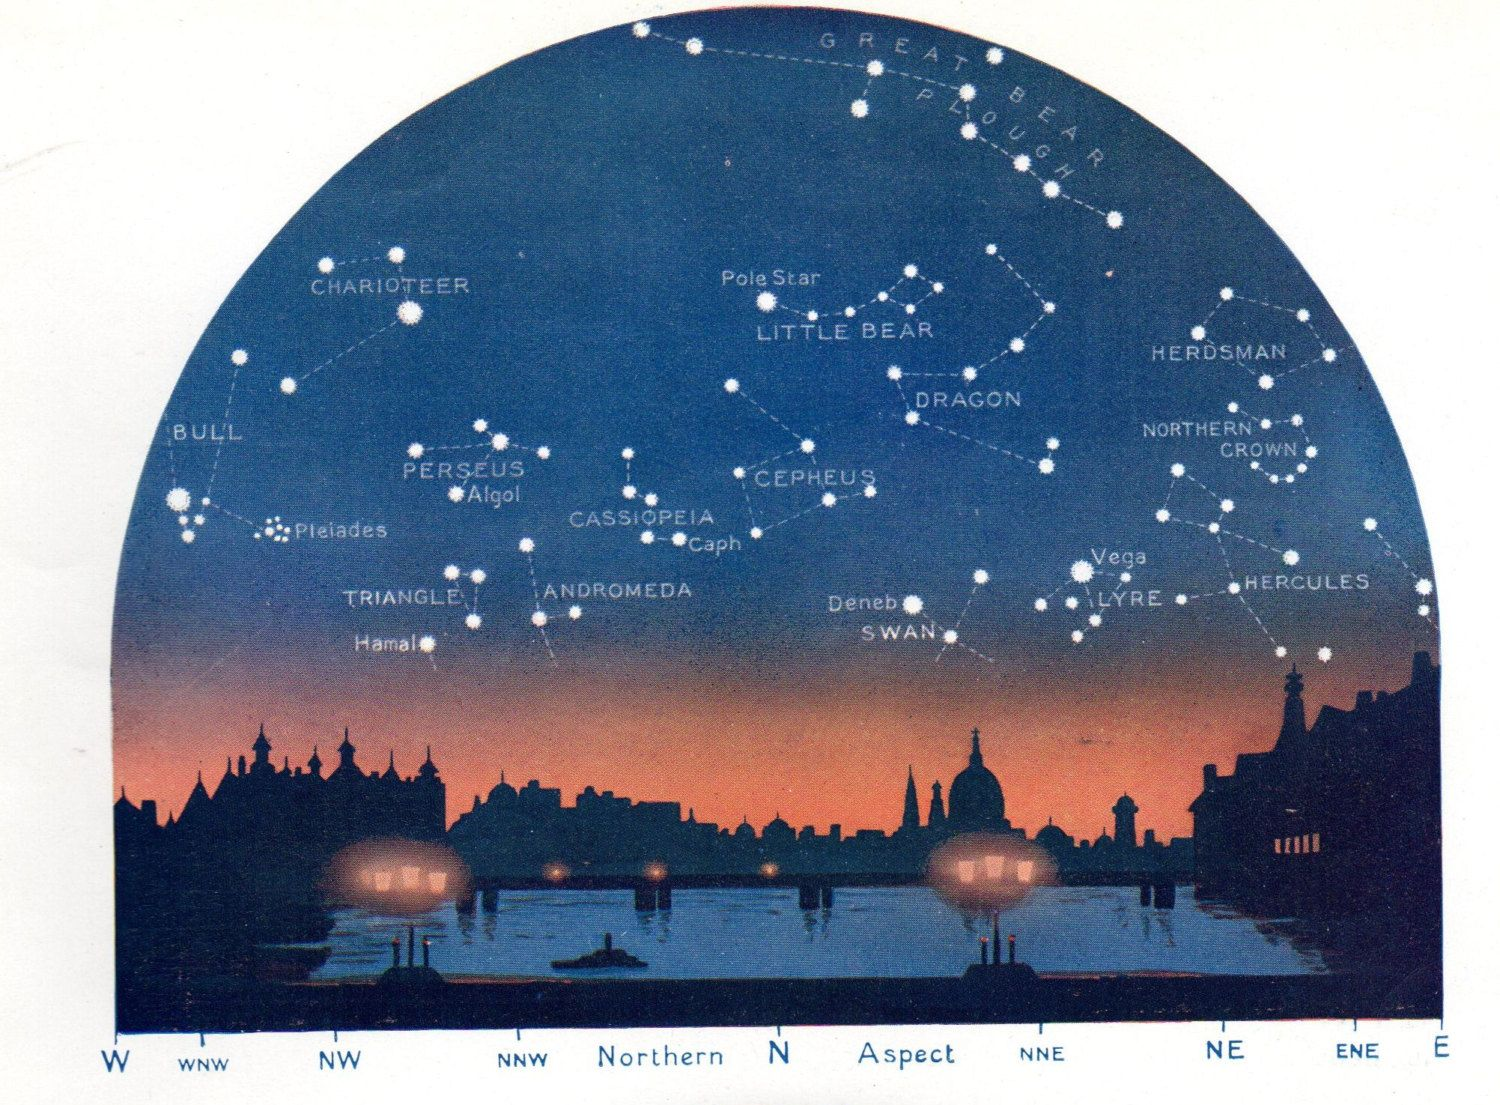 Antique astronomy print showing The Stars for March, looking North and South, from Westminster Bridge, London. Printed in 1931   https://img1.etsystatic.com/041/0/8164940/il_fullxfull.582851033_d6qr.jpg